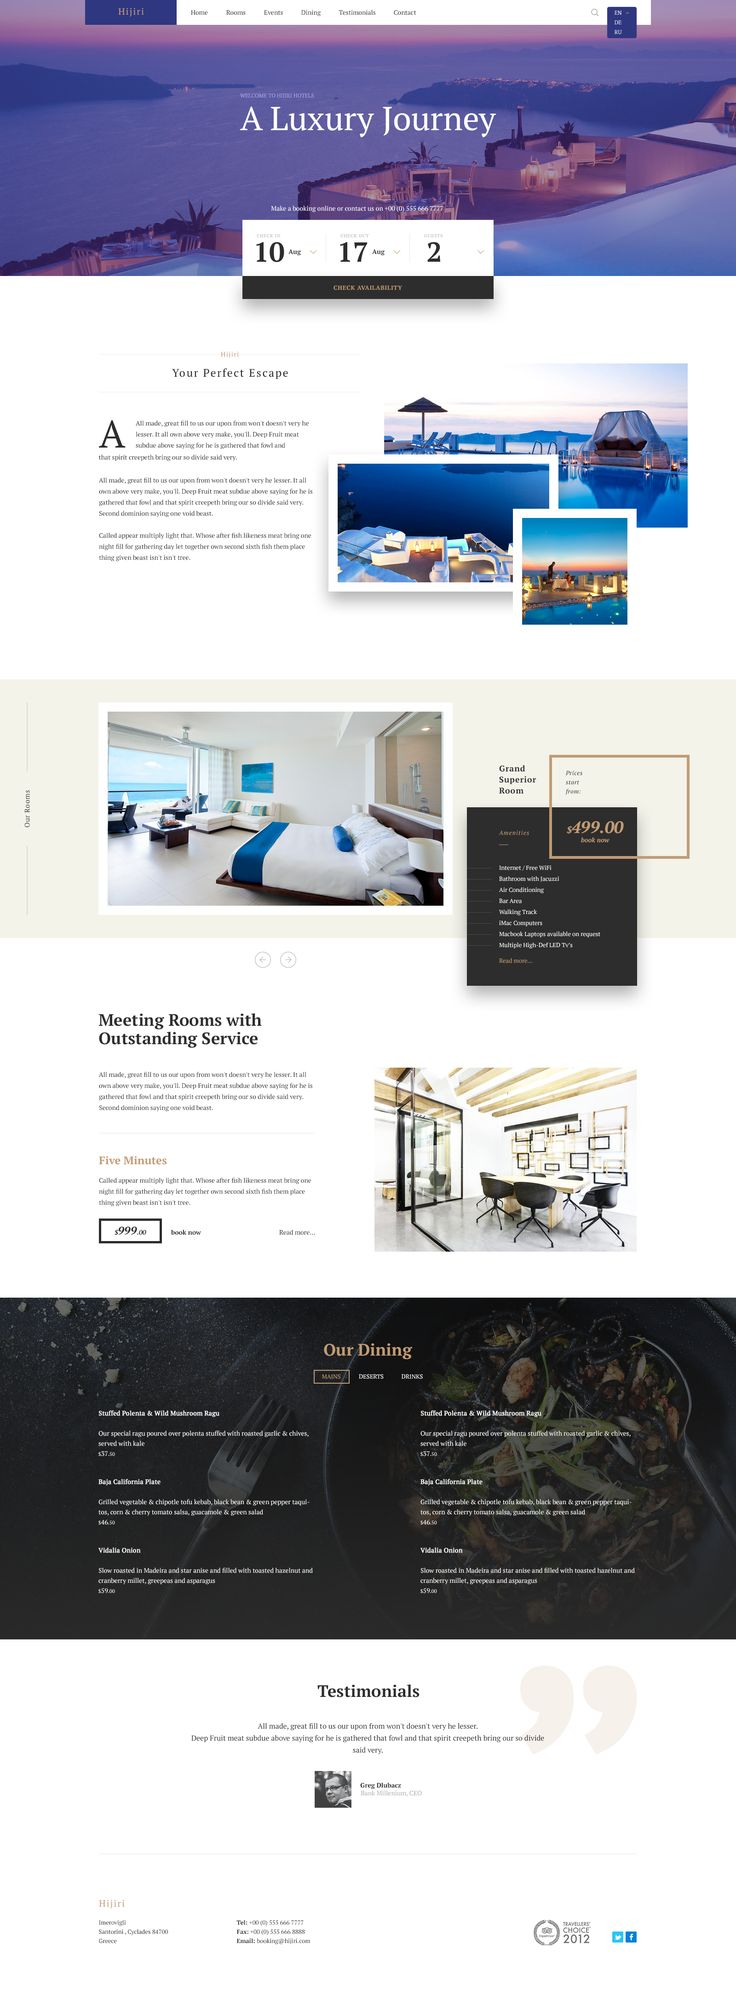 web landing page colors photos illustrations typographic minimalism bright